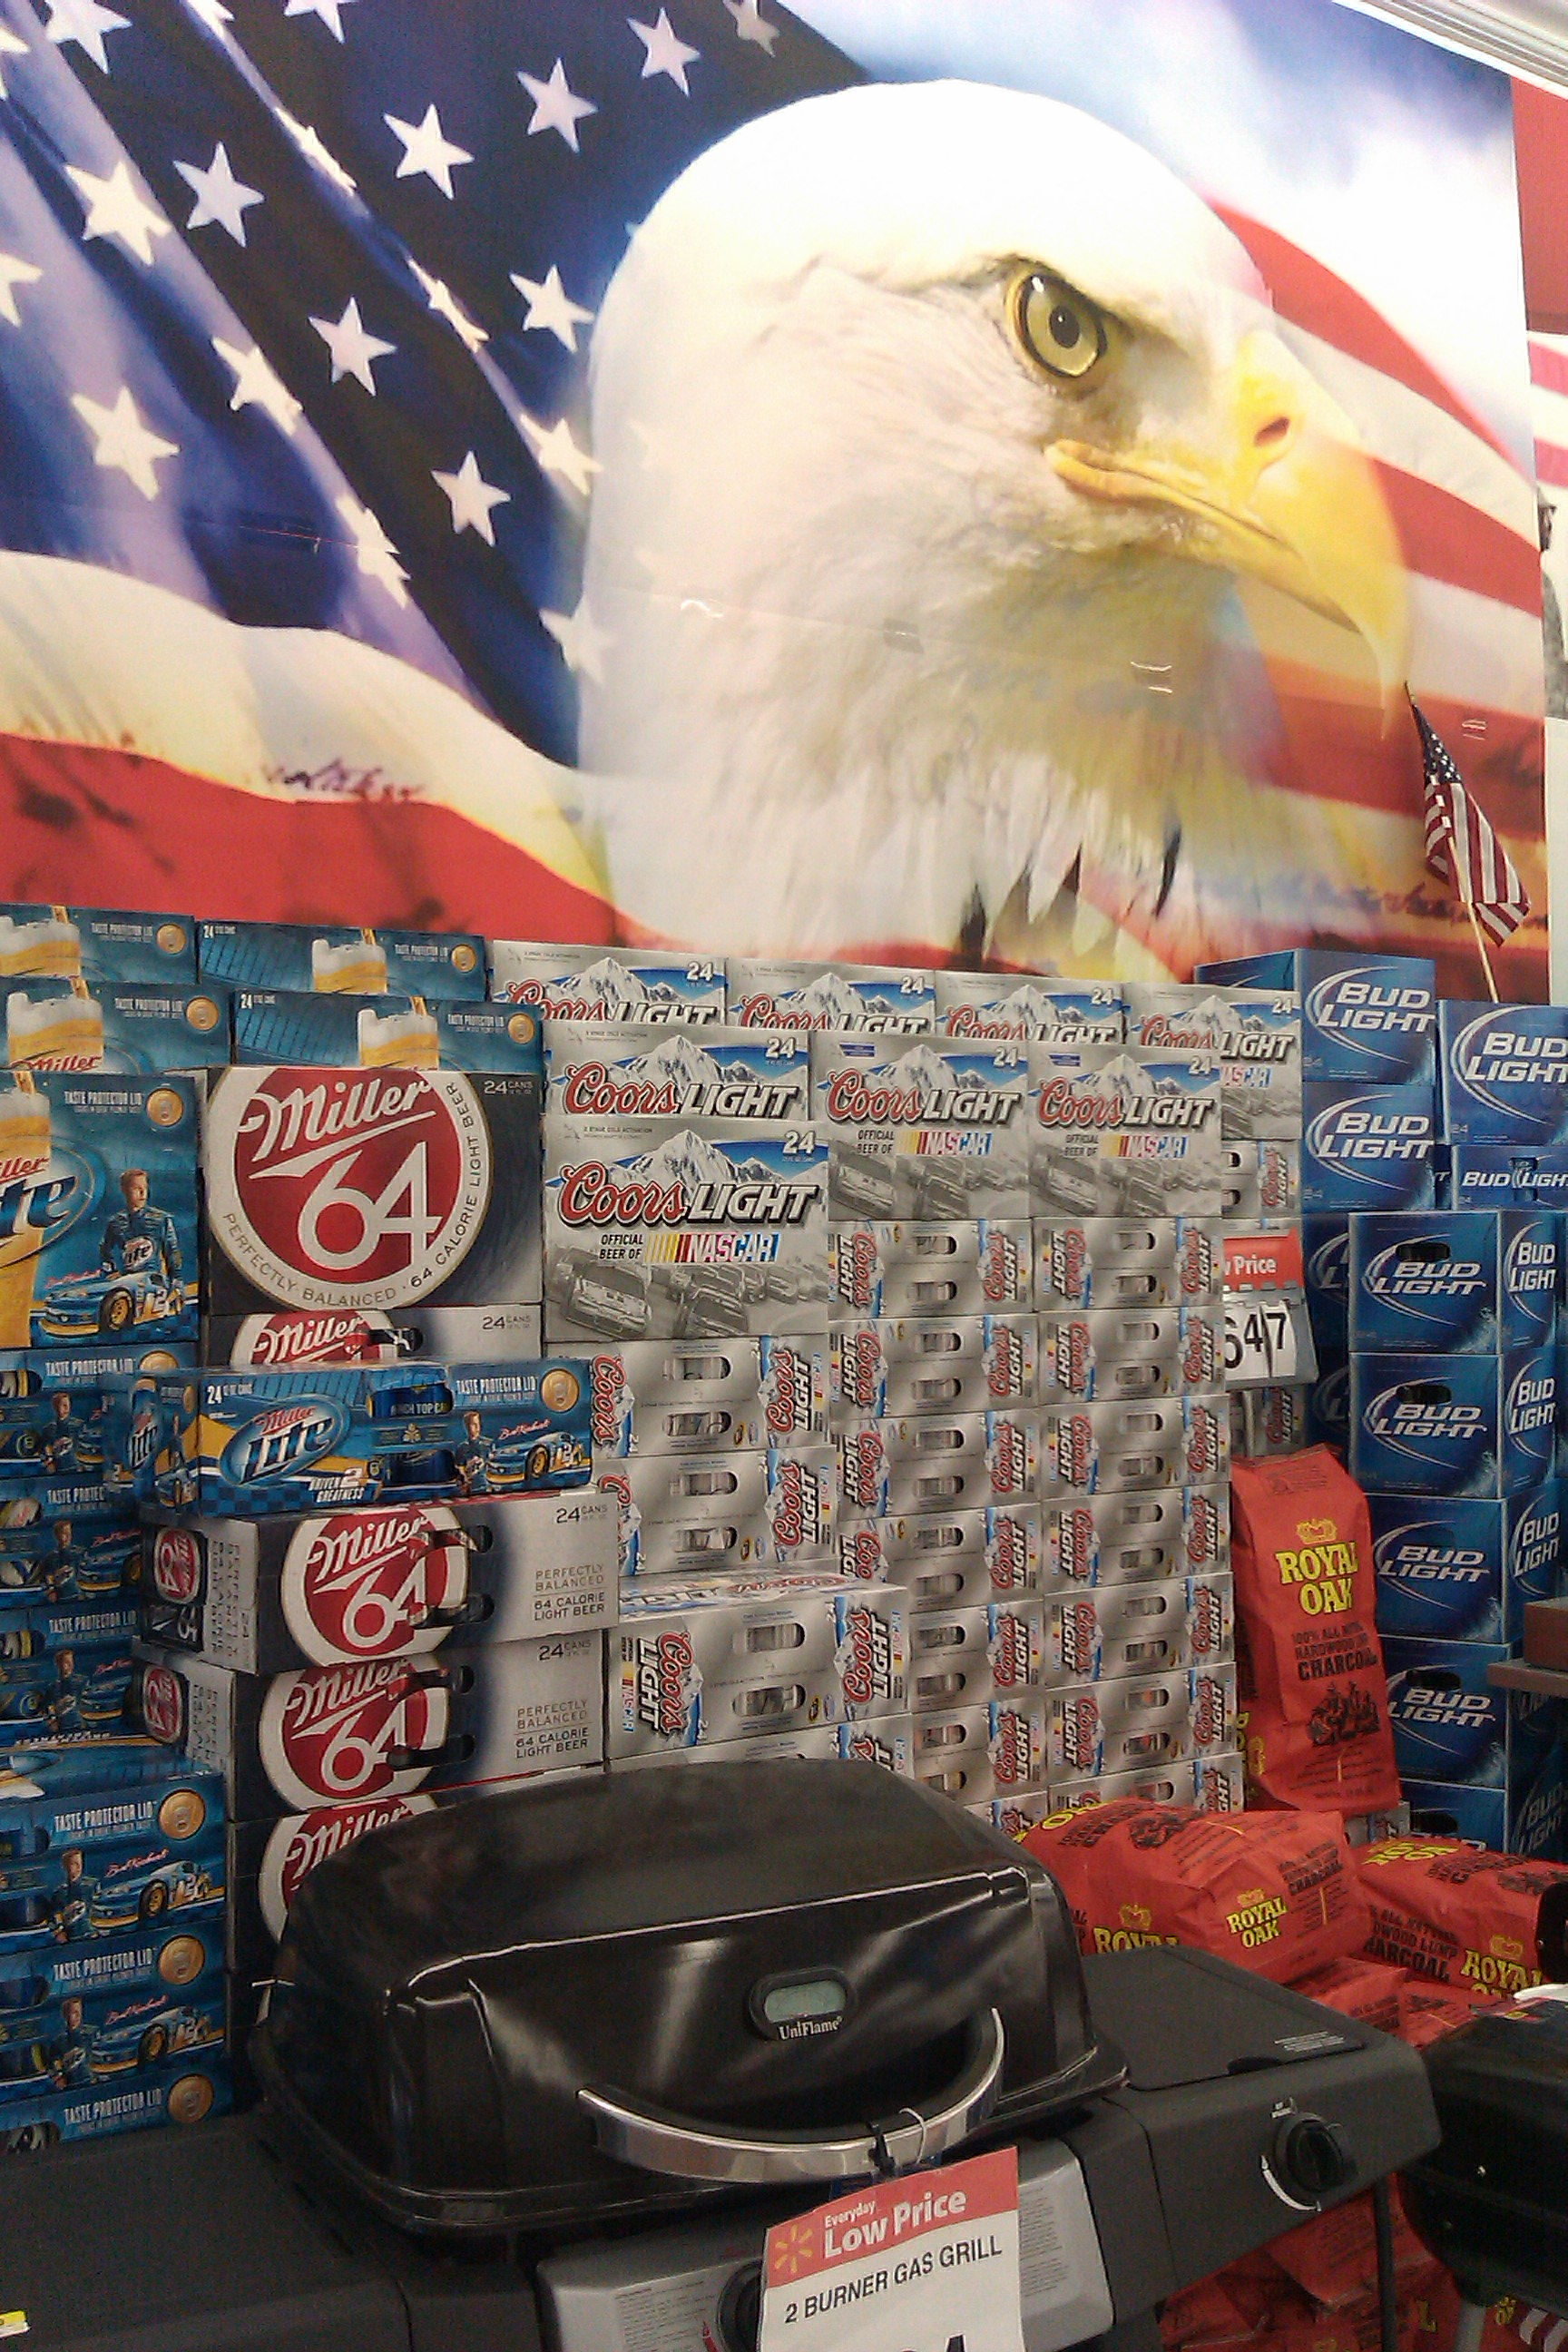 This is America. TFM.